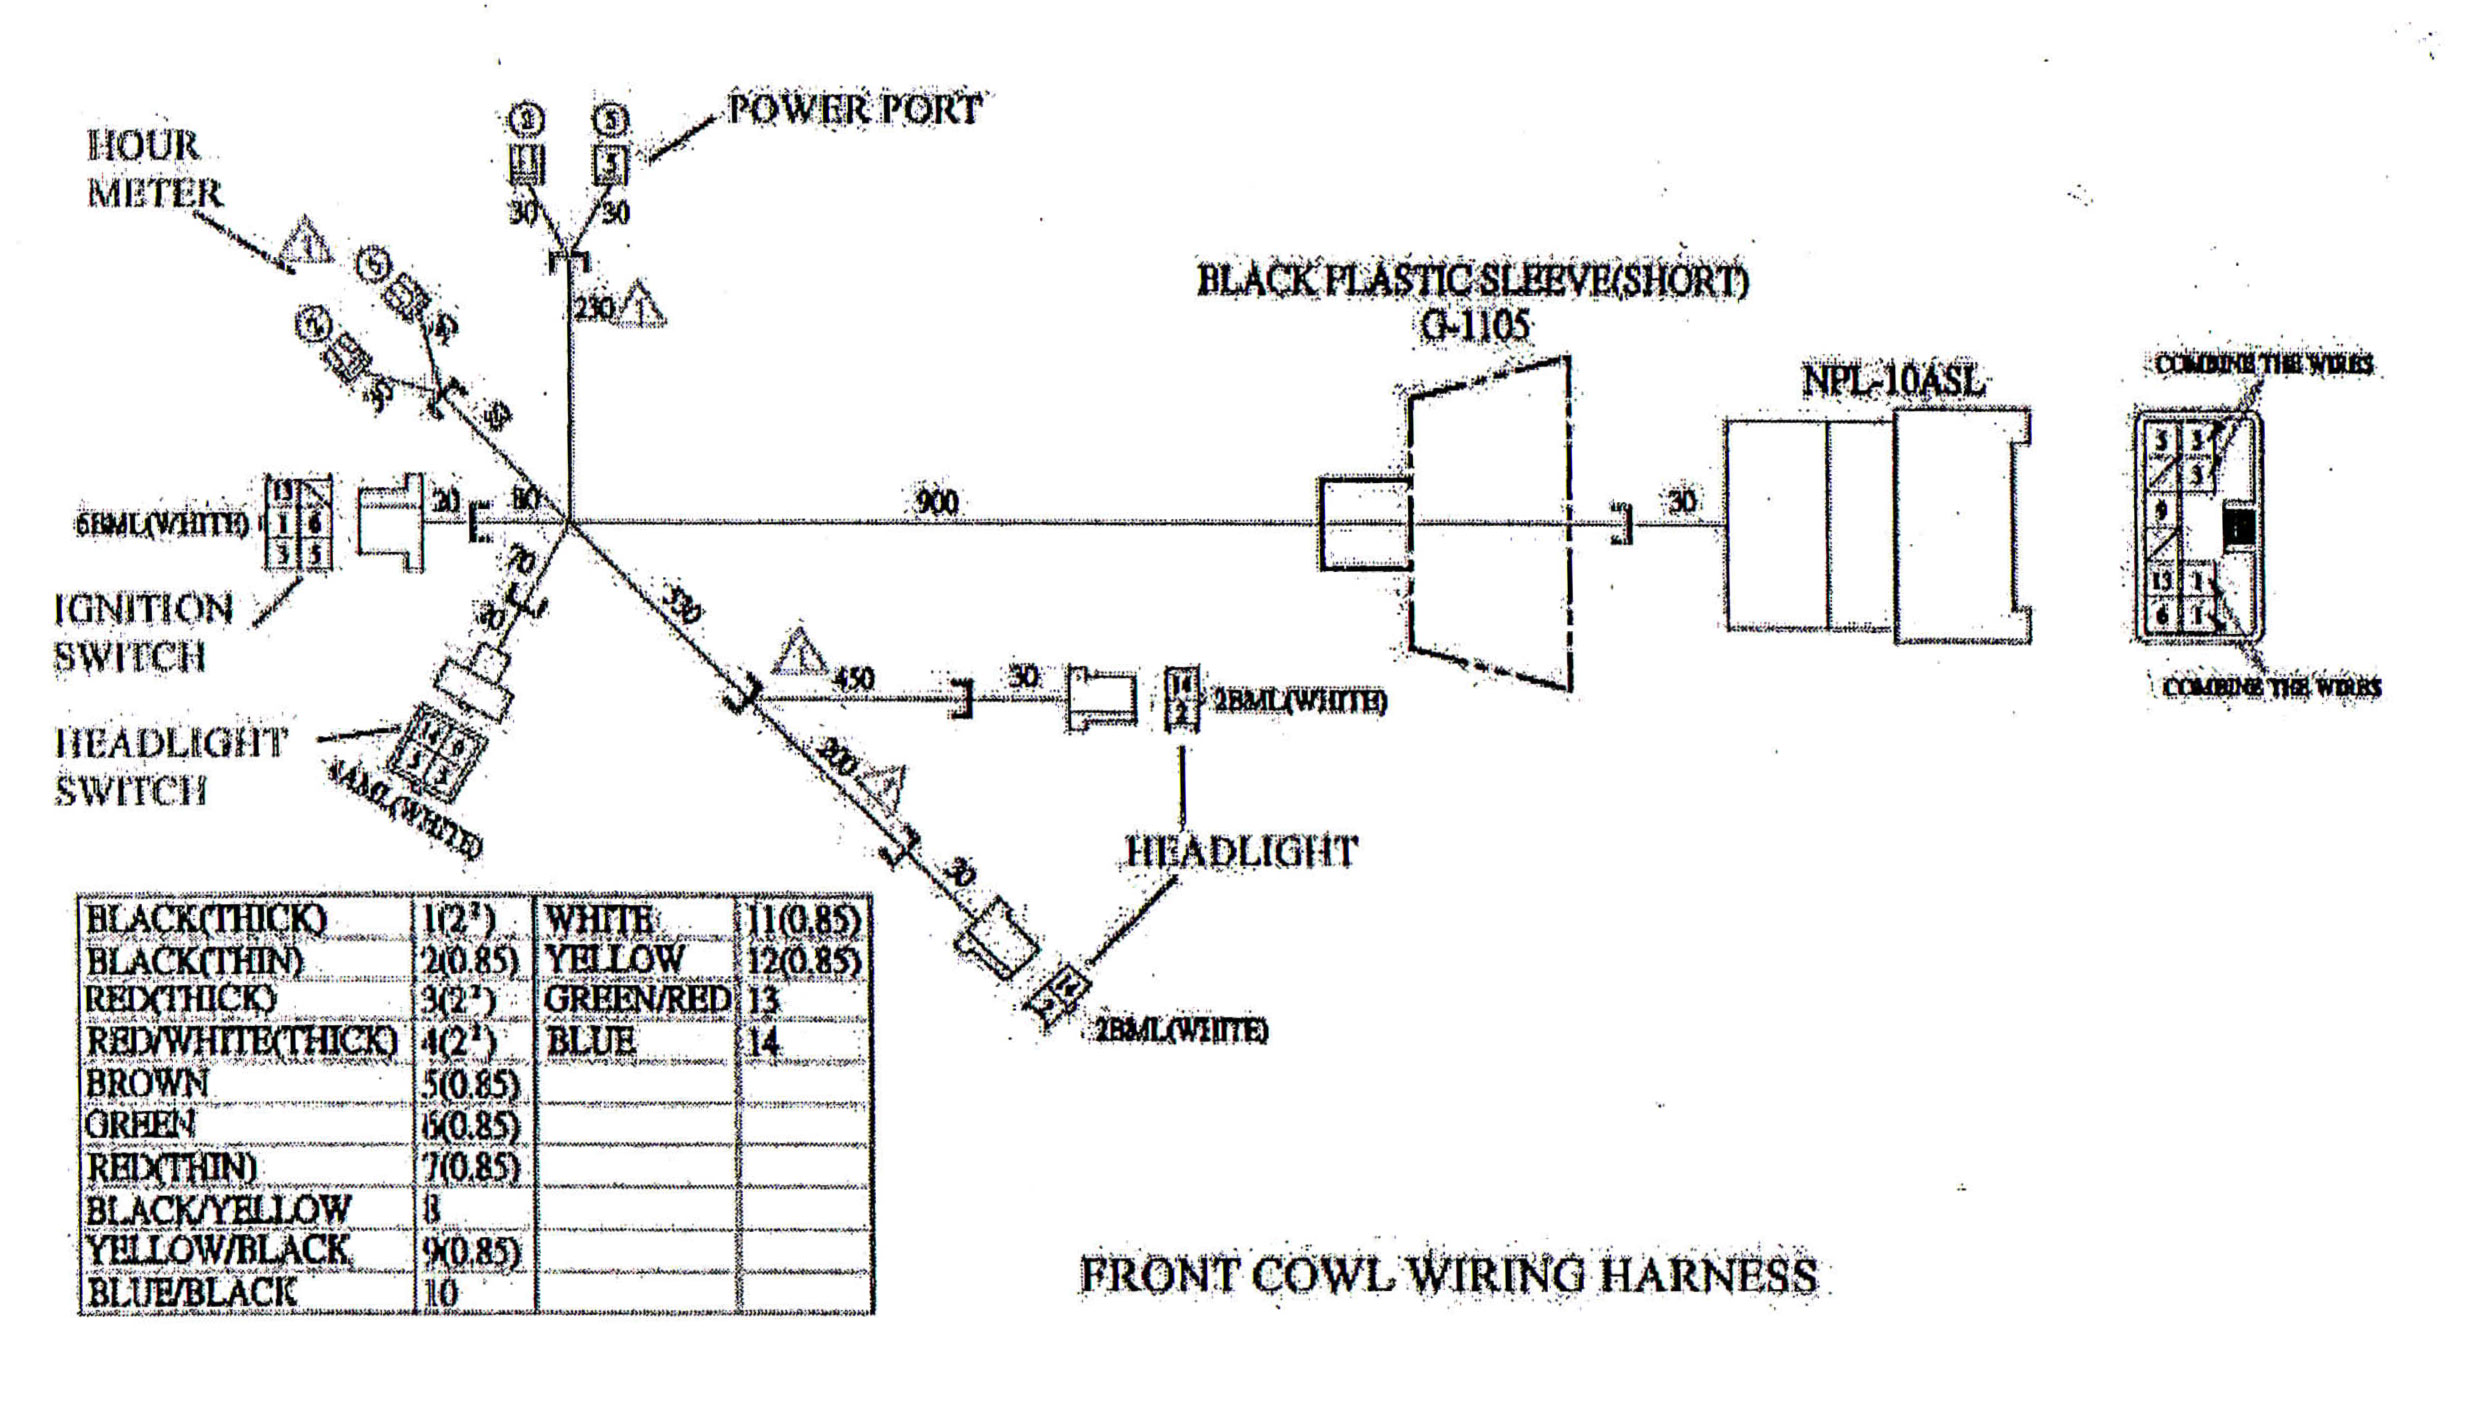 Gx 150 Wiring Diagram Online 2003 Civic Library